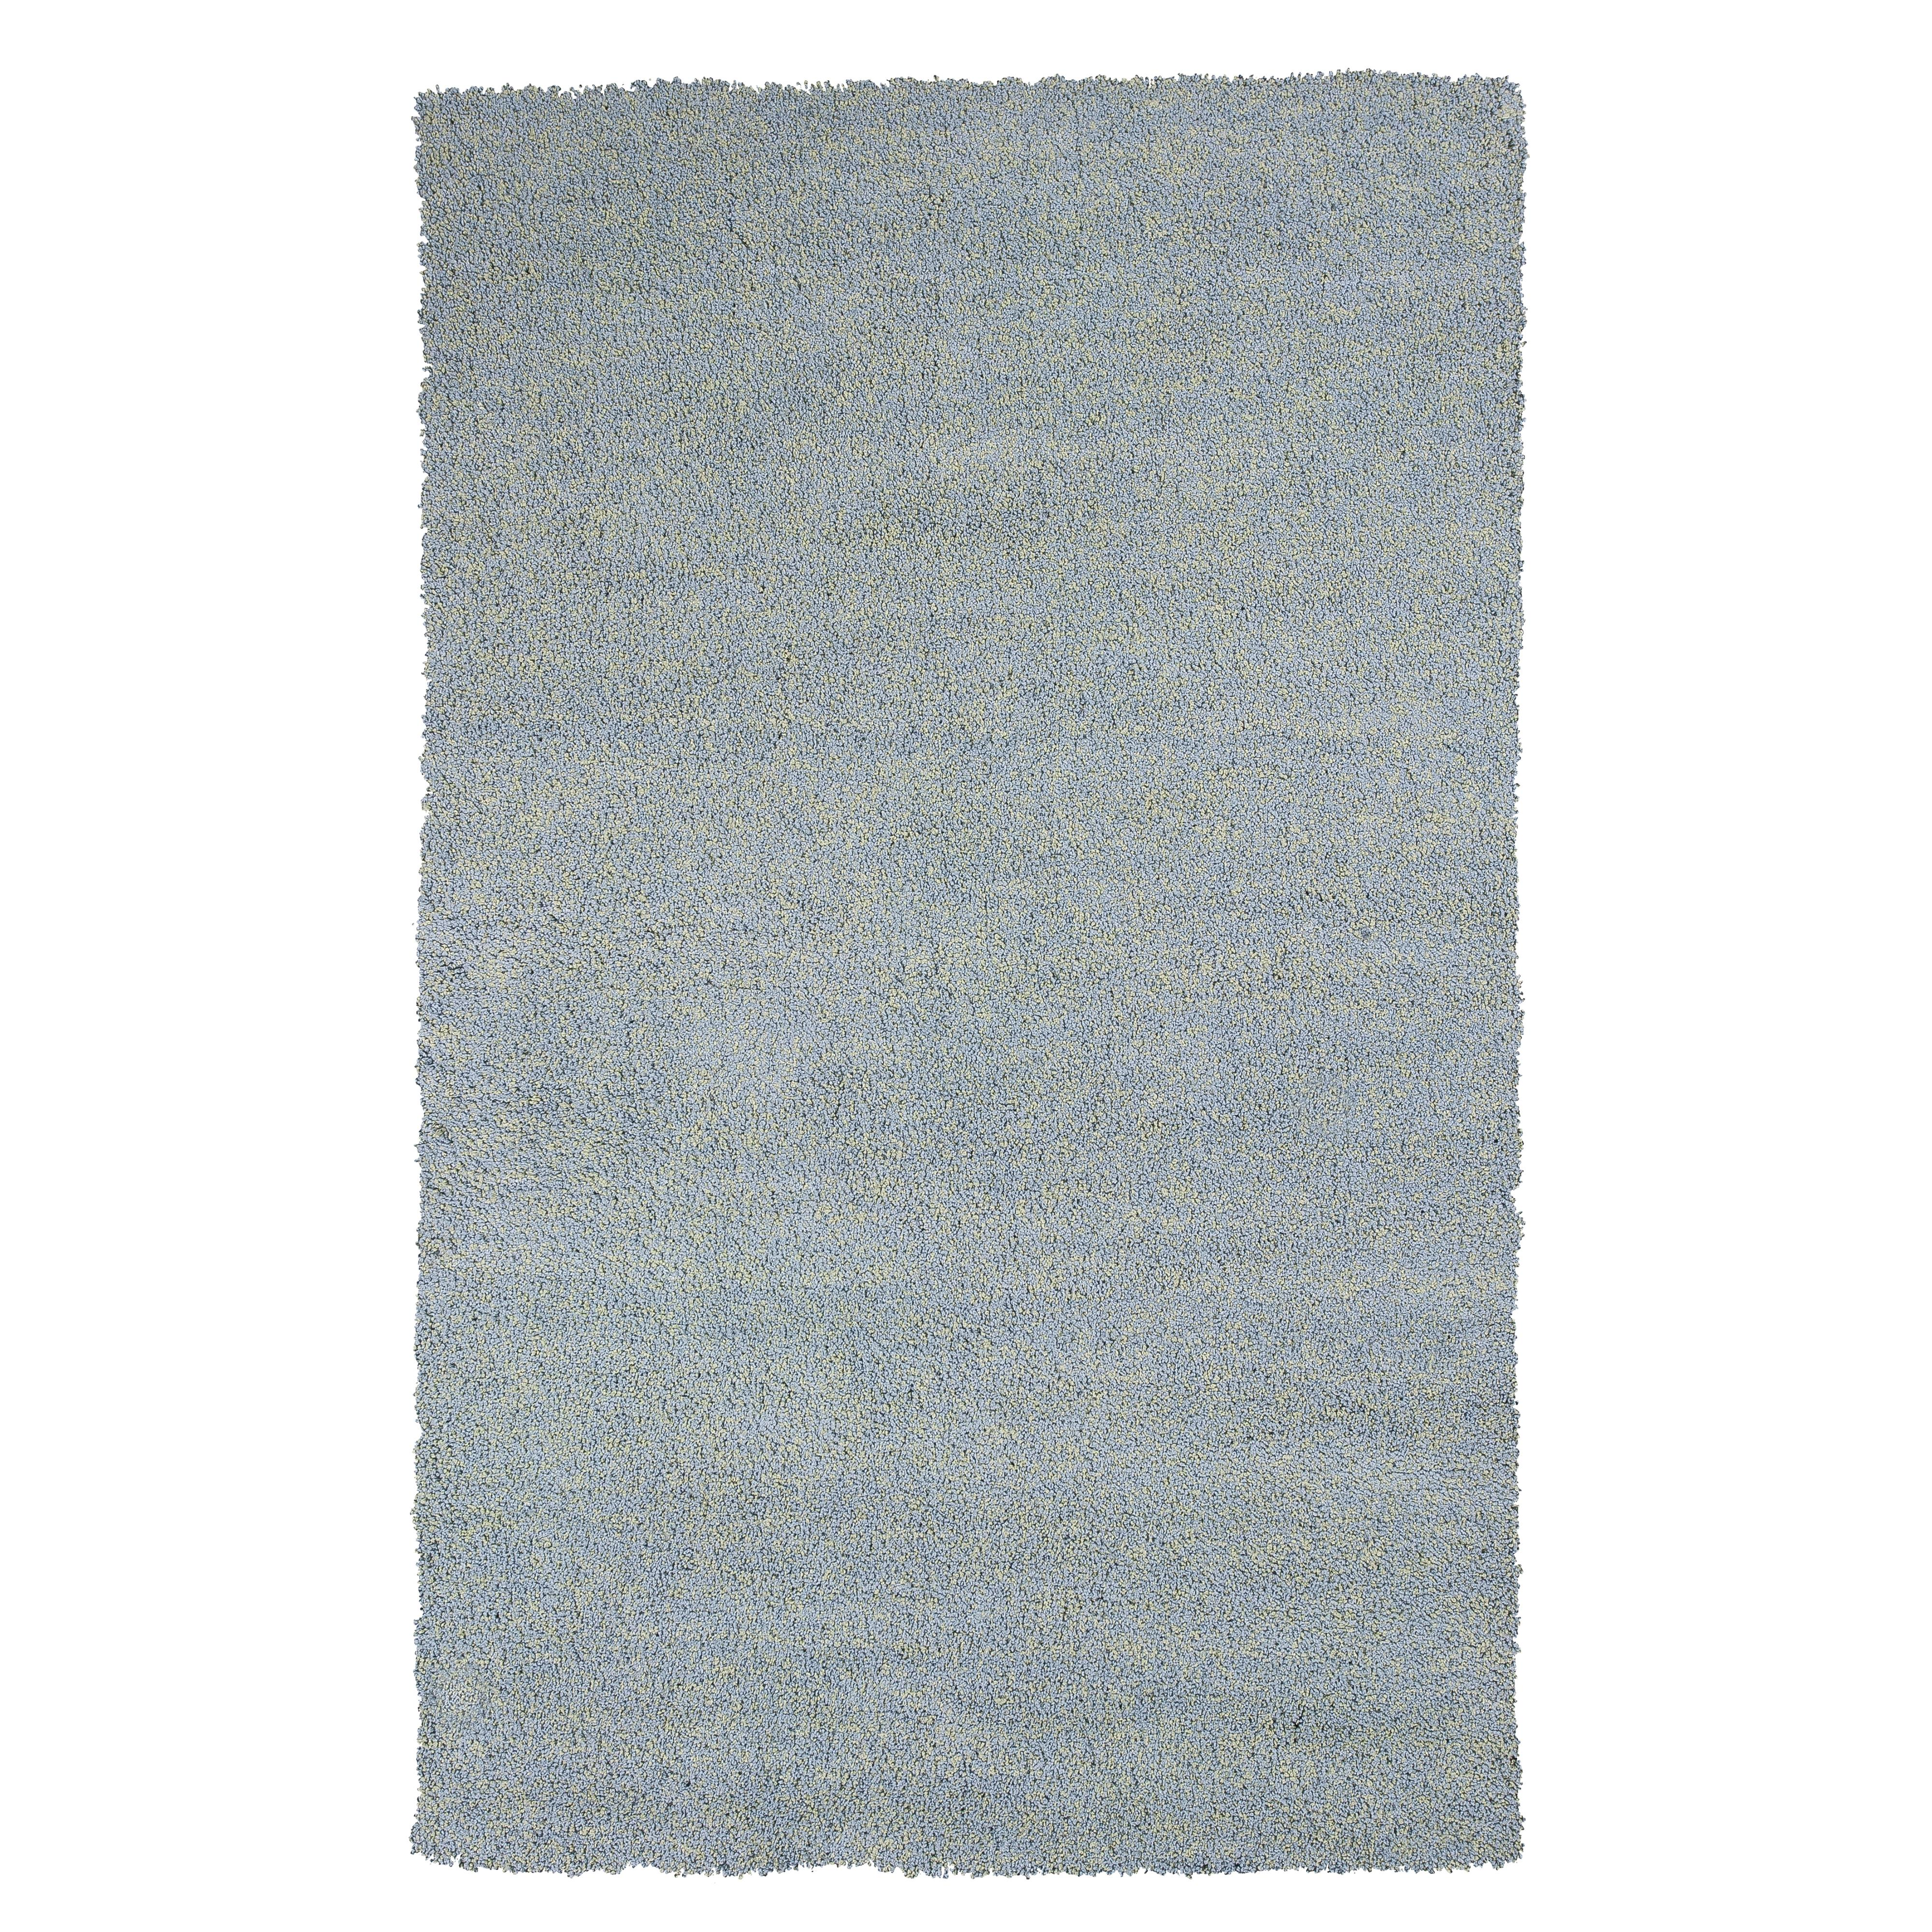 Bliss 8' x 11' Rug by Kas at Zak's Home